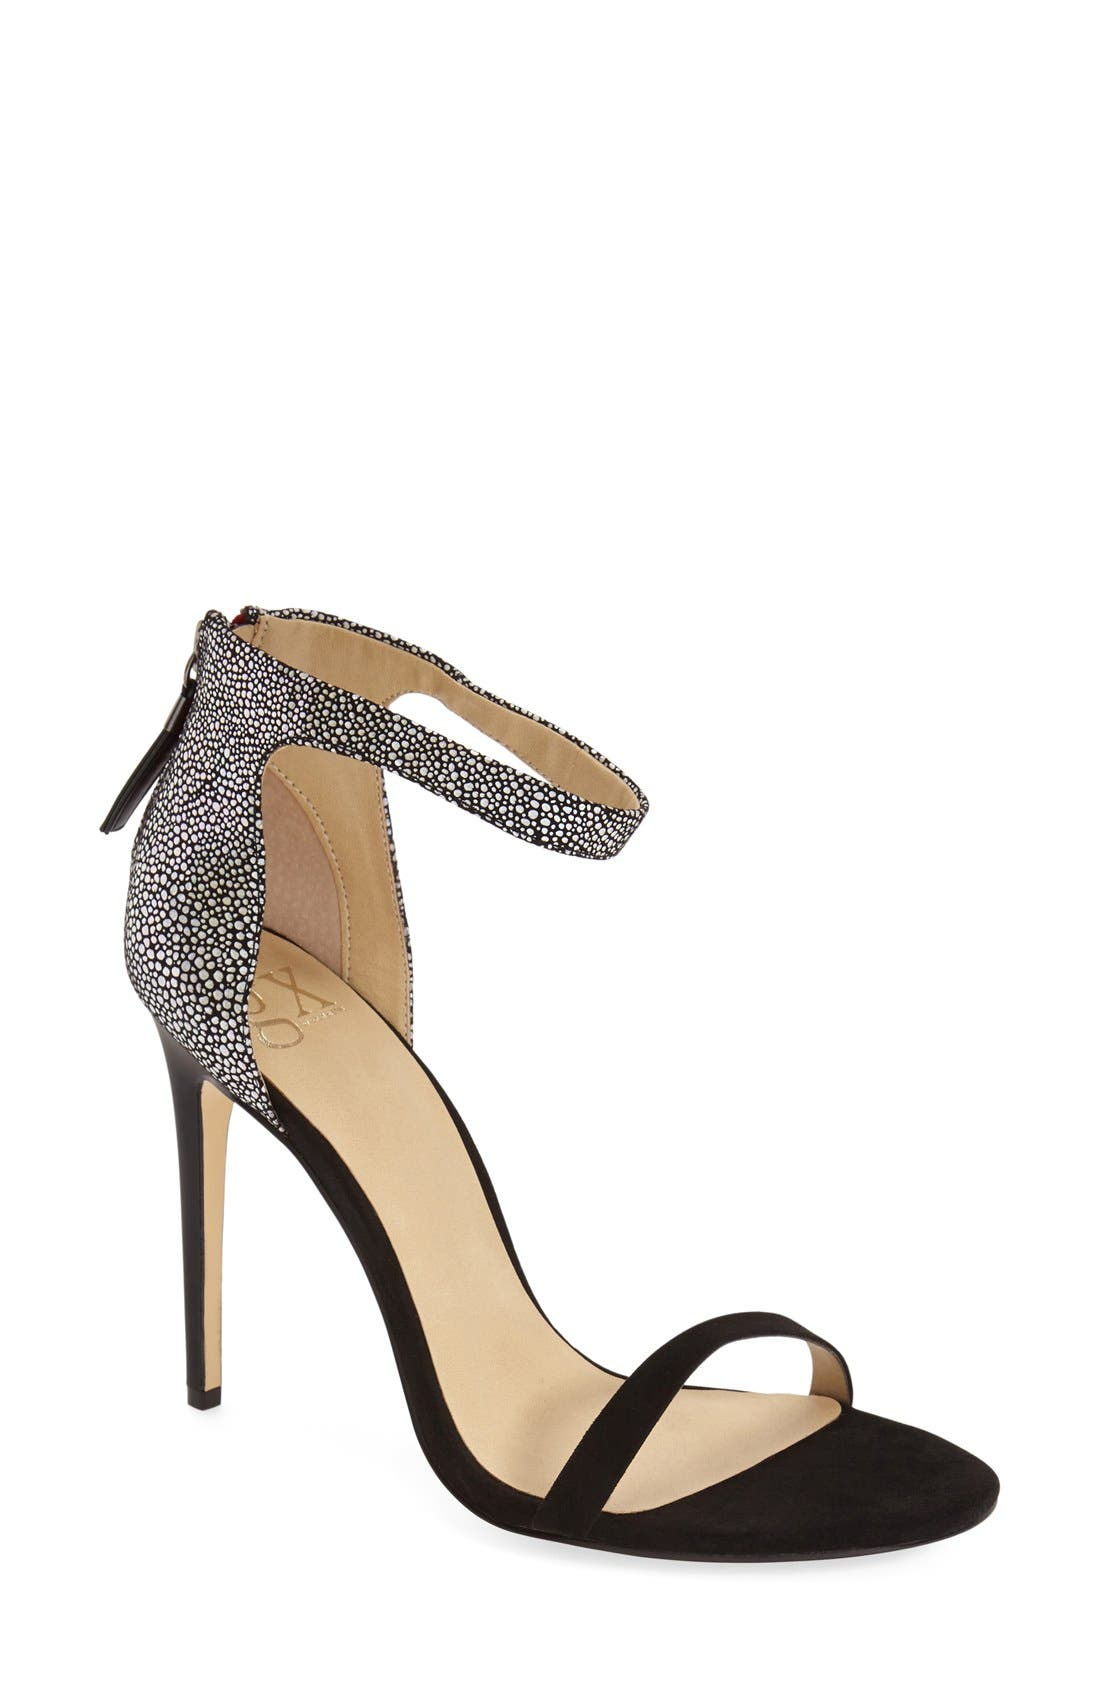 Alternate Image 1 Selected - gx by Gwen Stefani 'Observe' Ankle Strap Sandal (Women)